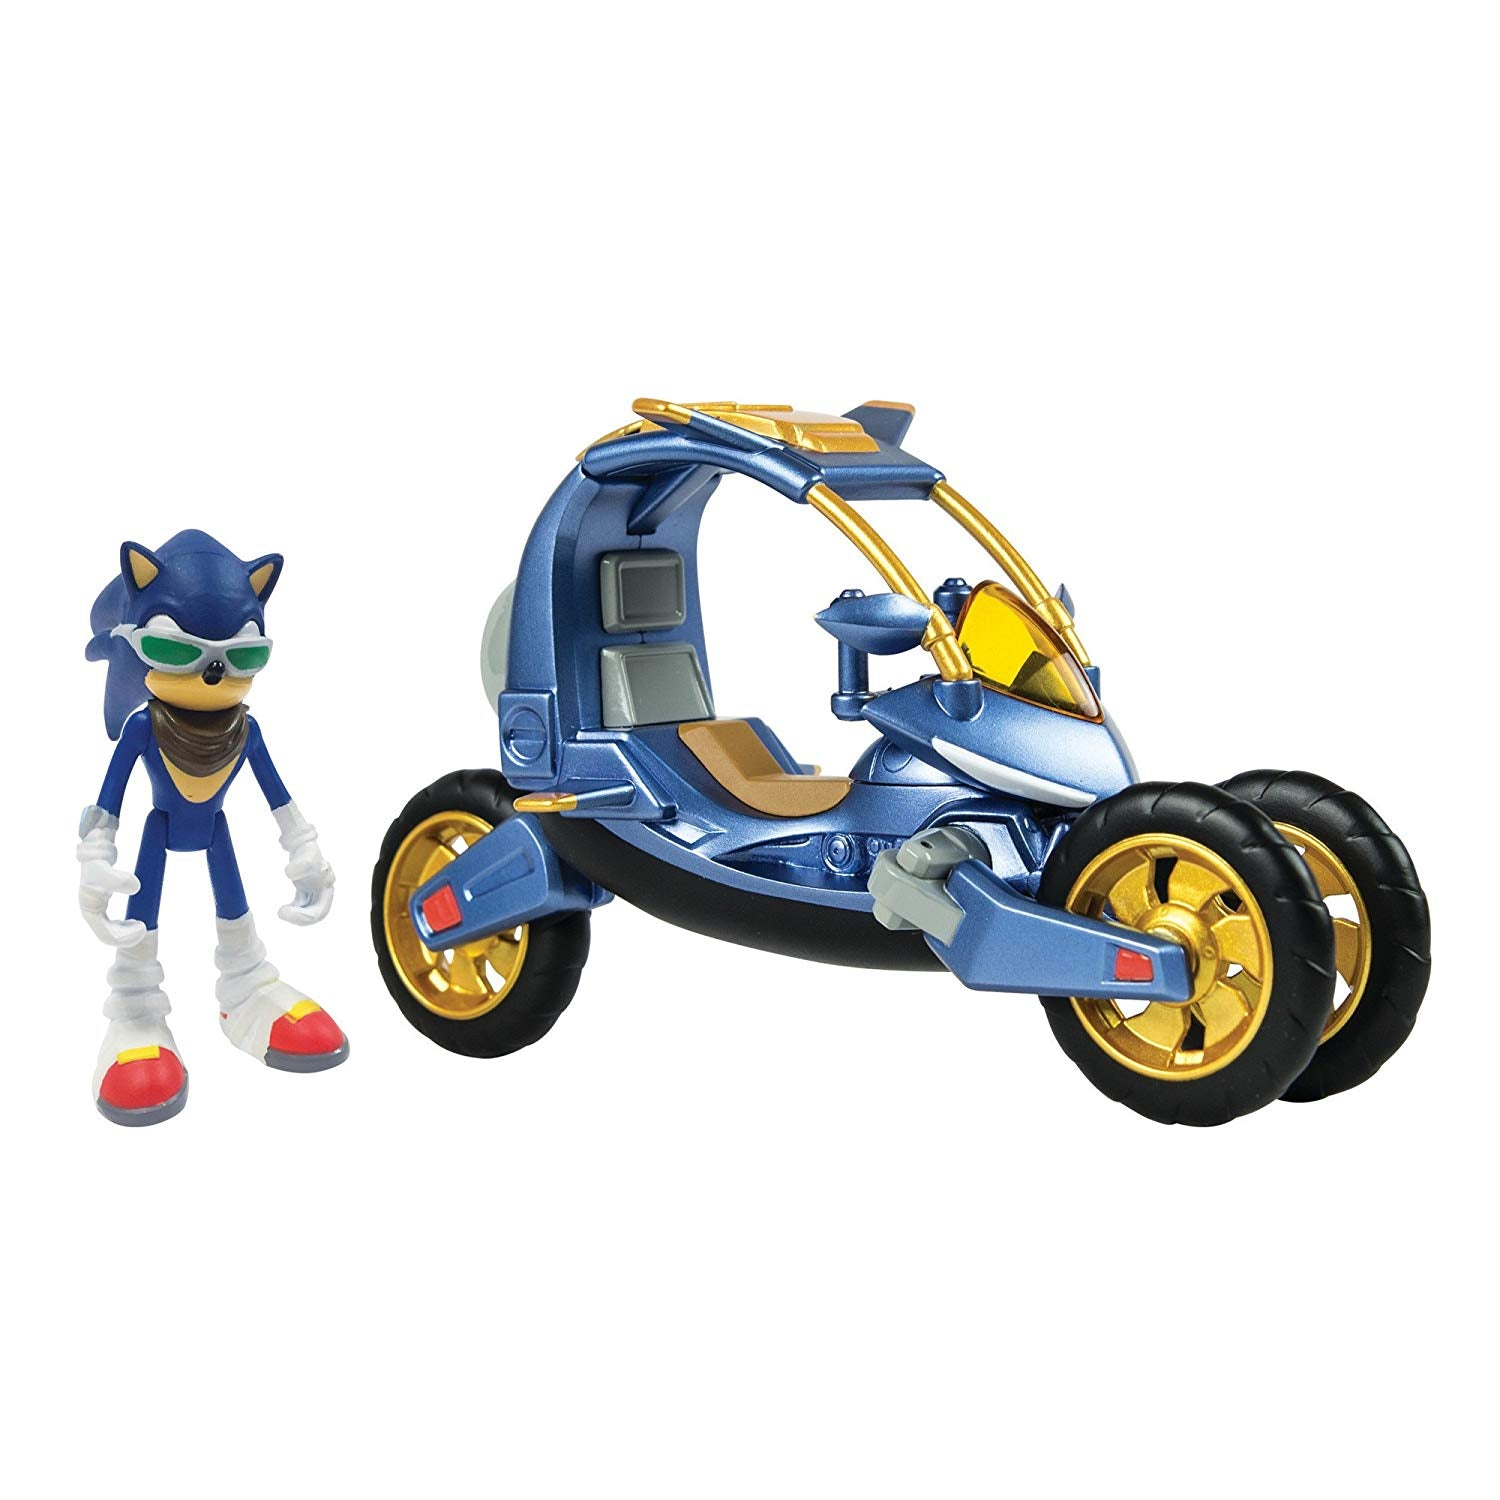 BOX DAMAGED - Sonic The Hedgehog - Blue Force One Sonic Boom Action Figure and Vehicle Play Set - Suitable From 4 Years